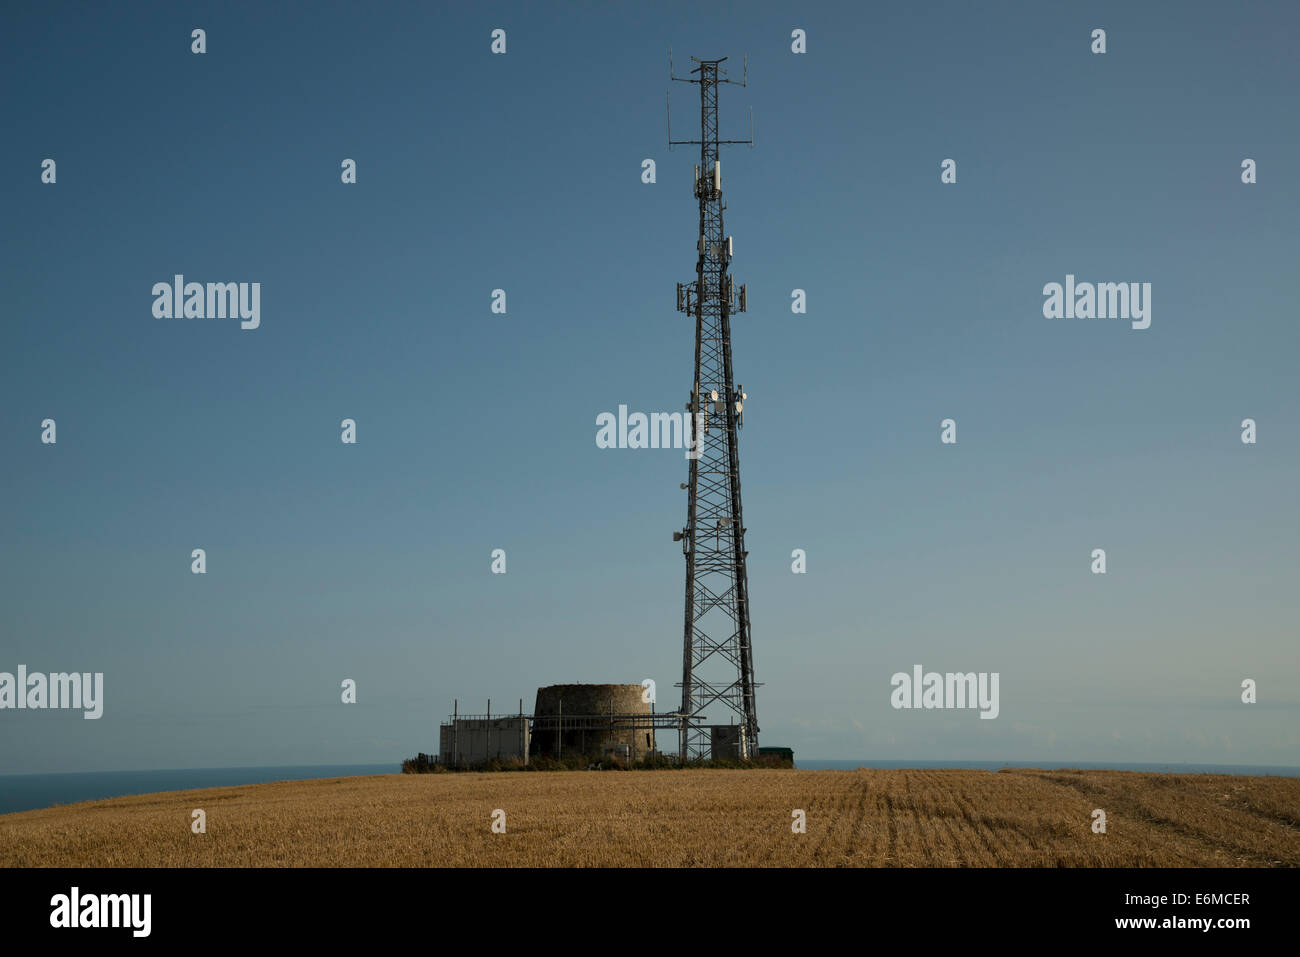 Salt pot lighthouse and telecommunication aerials near St Catherine's Oratory, Isle of Wight, England - Stock Image